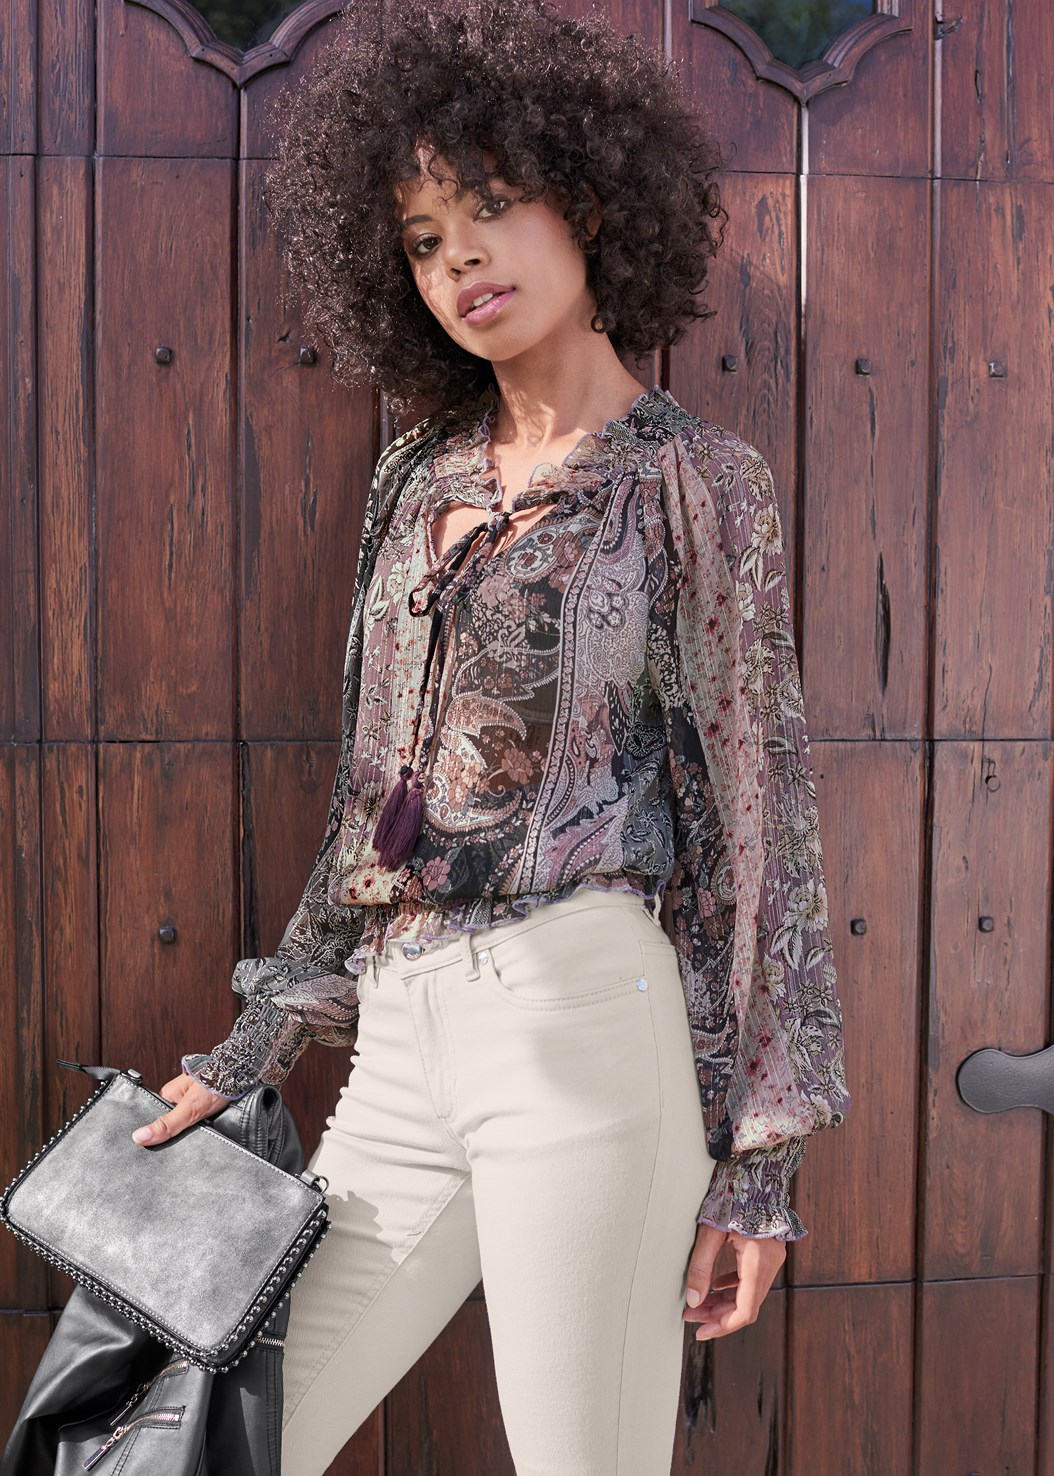 Paisley Print Top,Mid Rise Color Skinny Jeans,Faux Leather Lace Up Jacket,Naked T-Shirt Bra,Peep Toe Booties,Studded Chain Strap Bag